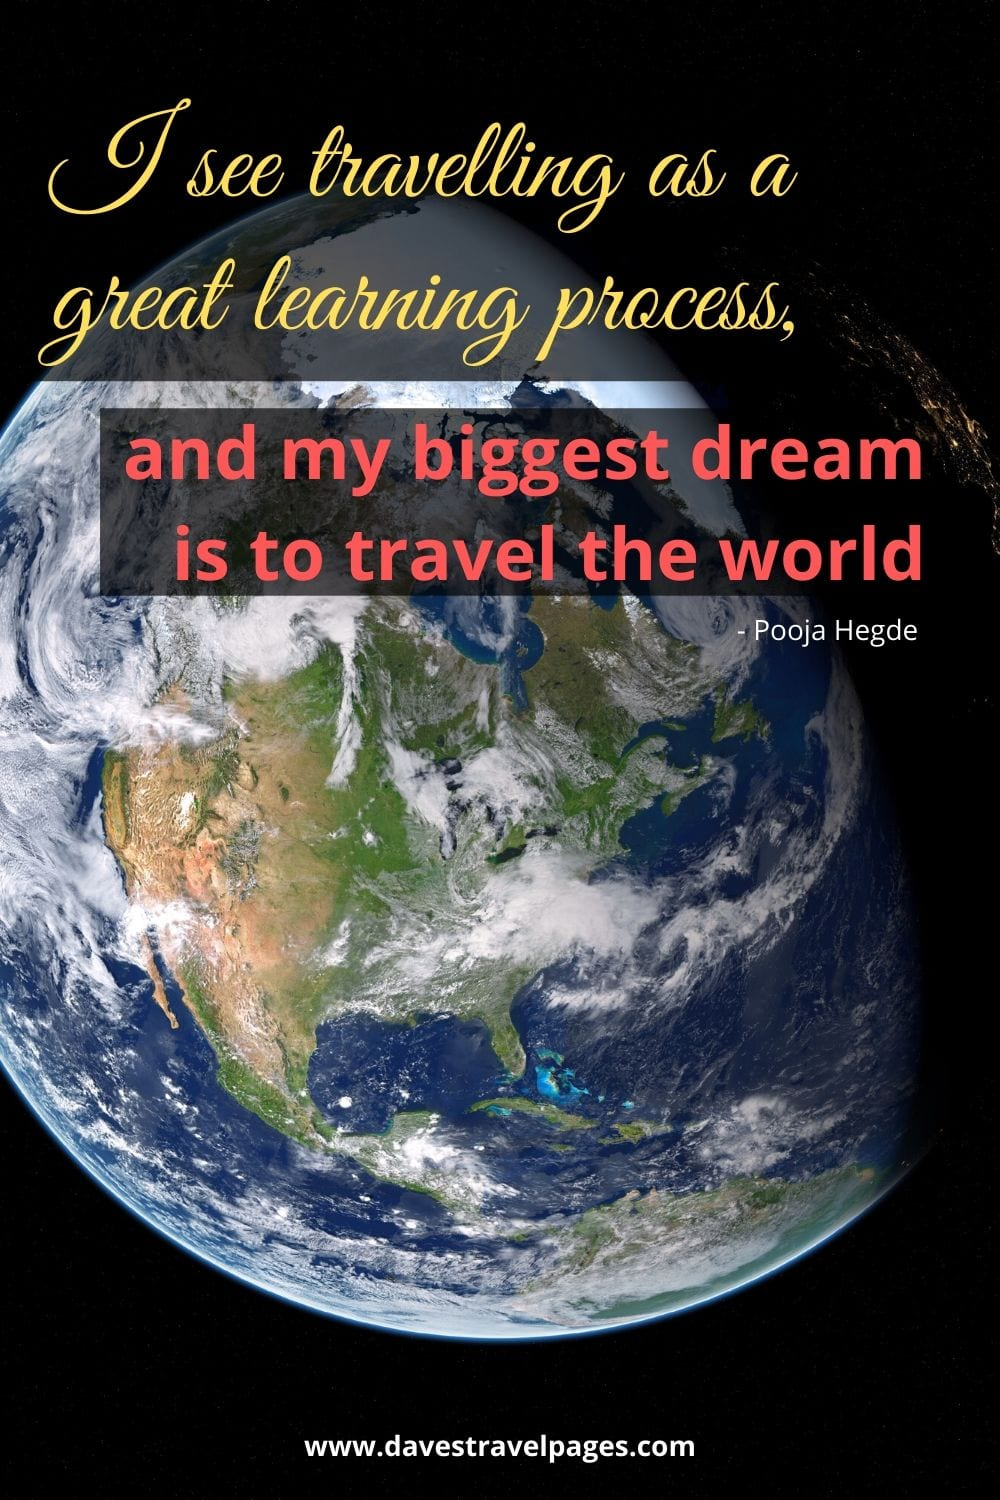 I see travelling as a great learning process, and my biggest dream is to travel the world. Pooja Hegde